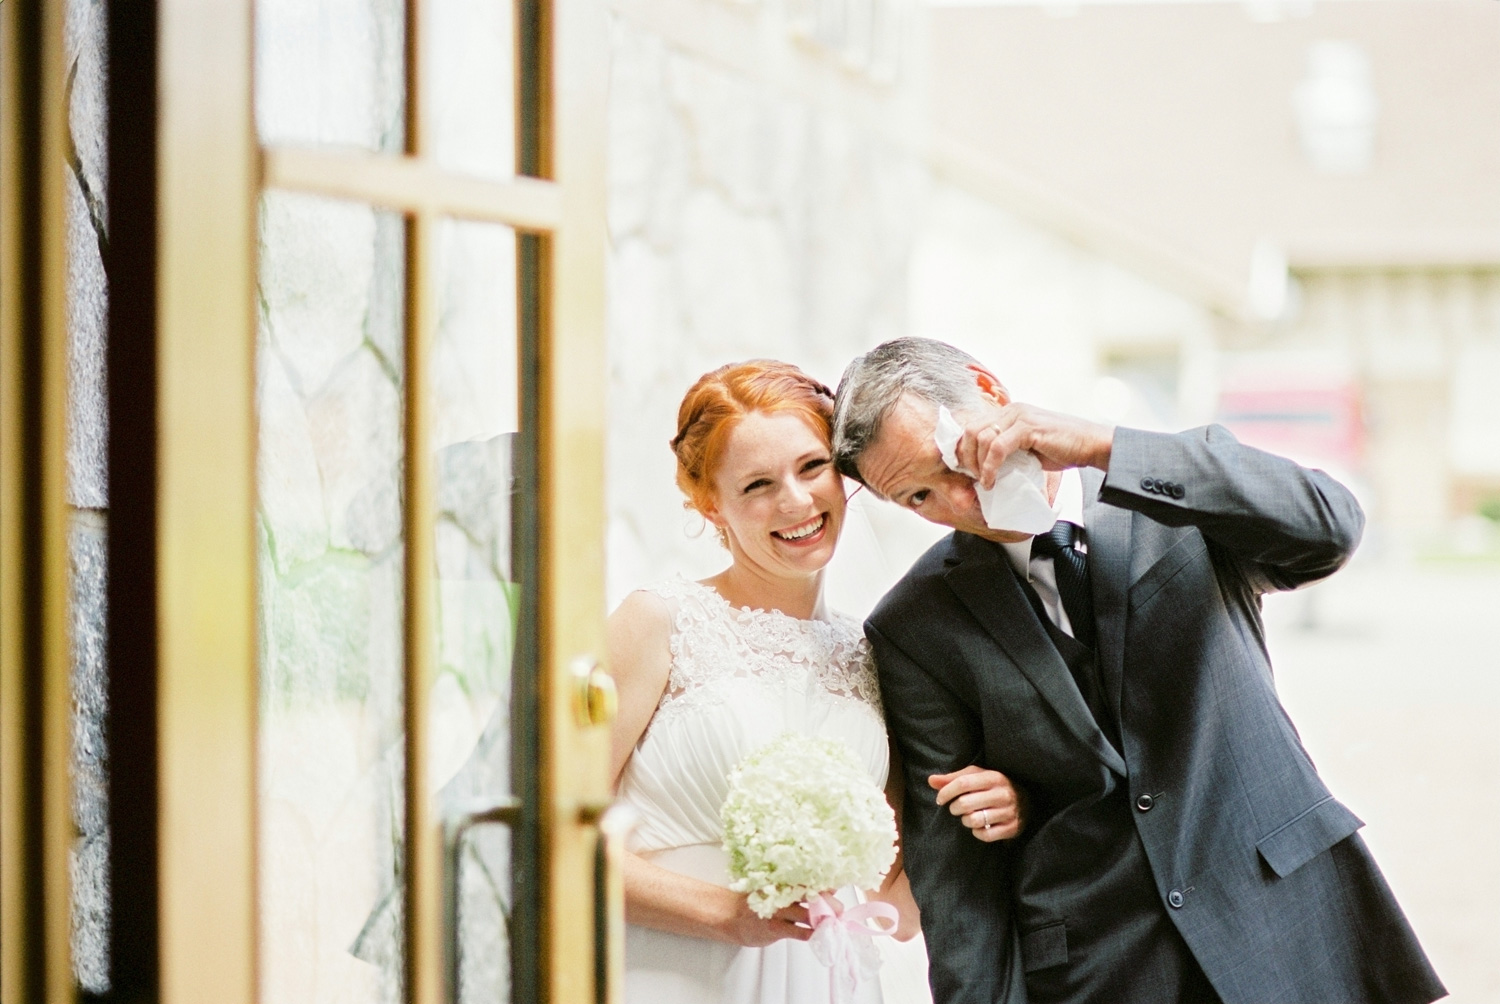 bride-and-her-father-walking-into-church.jpg